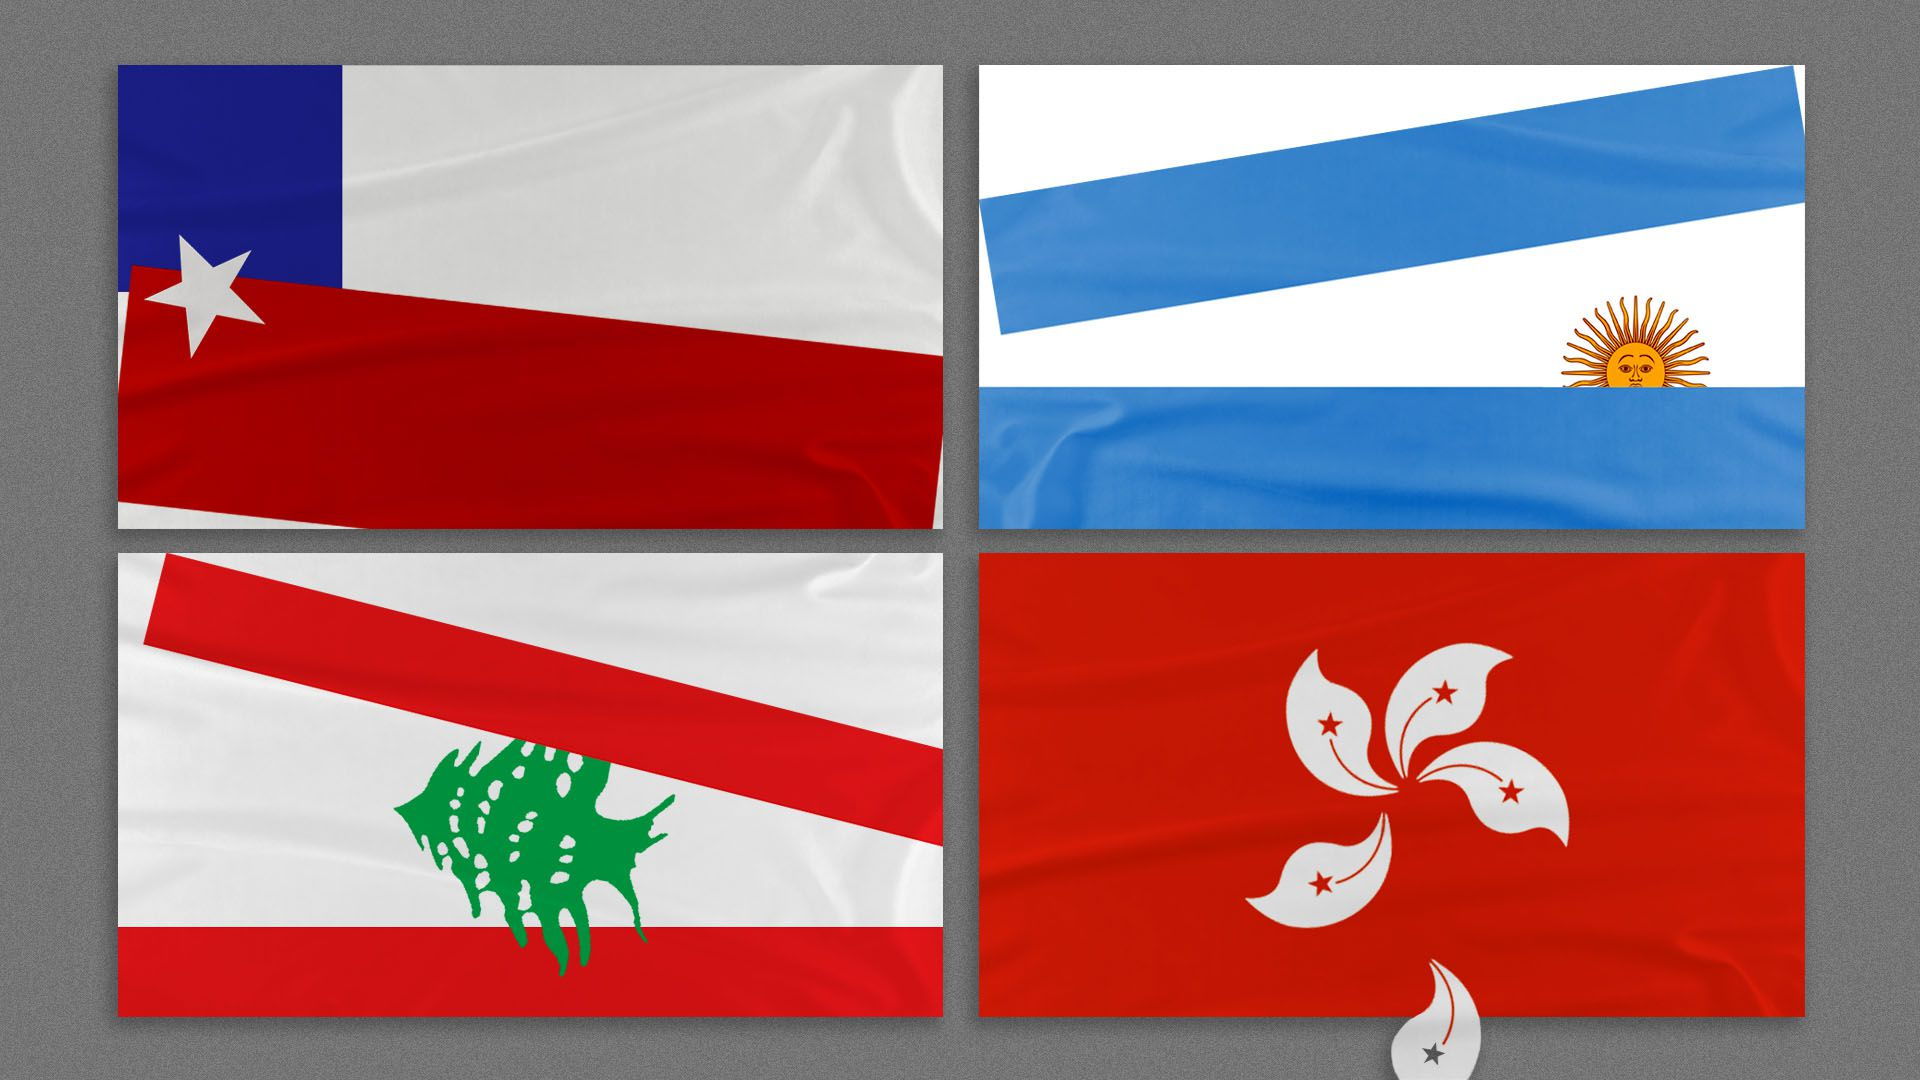 Illustration of the flags of Chile, Argentina, Lebanon, and Hong Kong, all in various states of falling apart